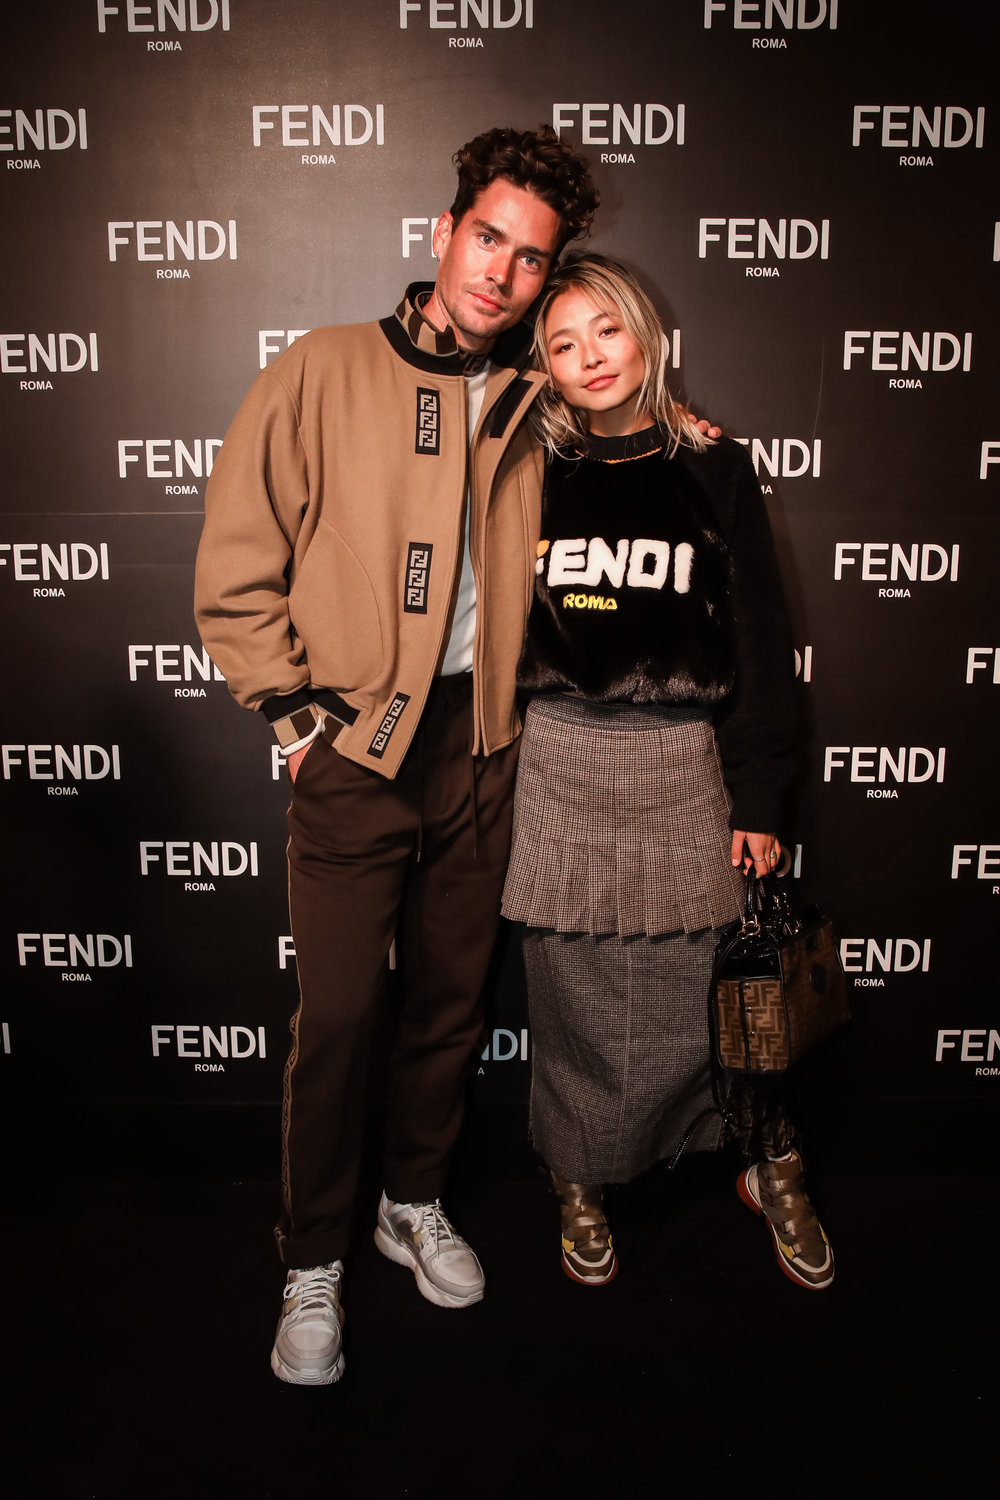 Fendi Collins Street Launch 30.8.18-3306.jpg